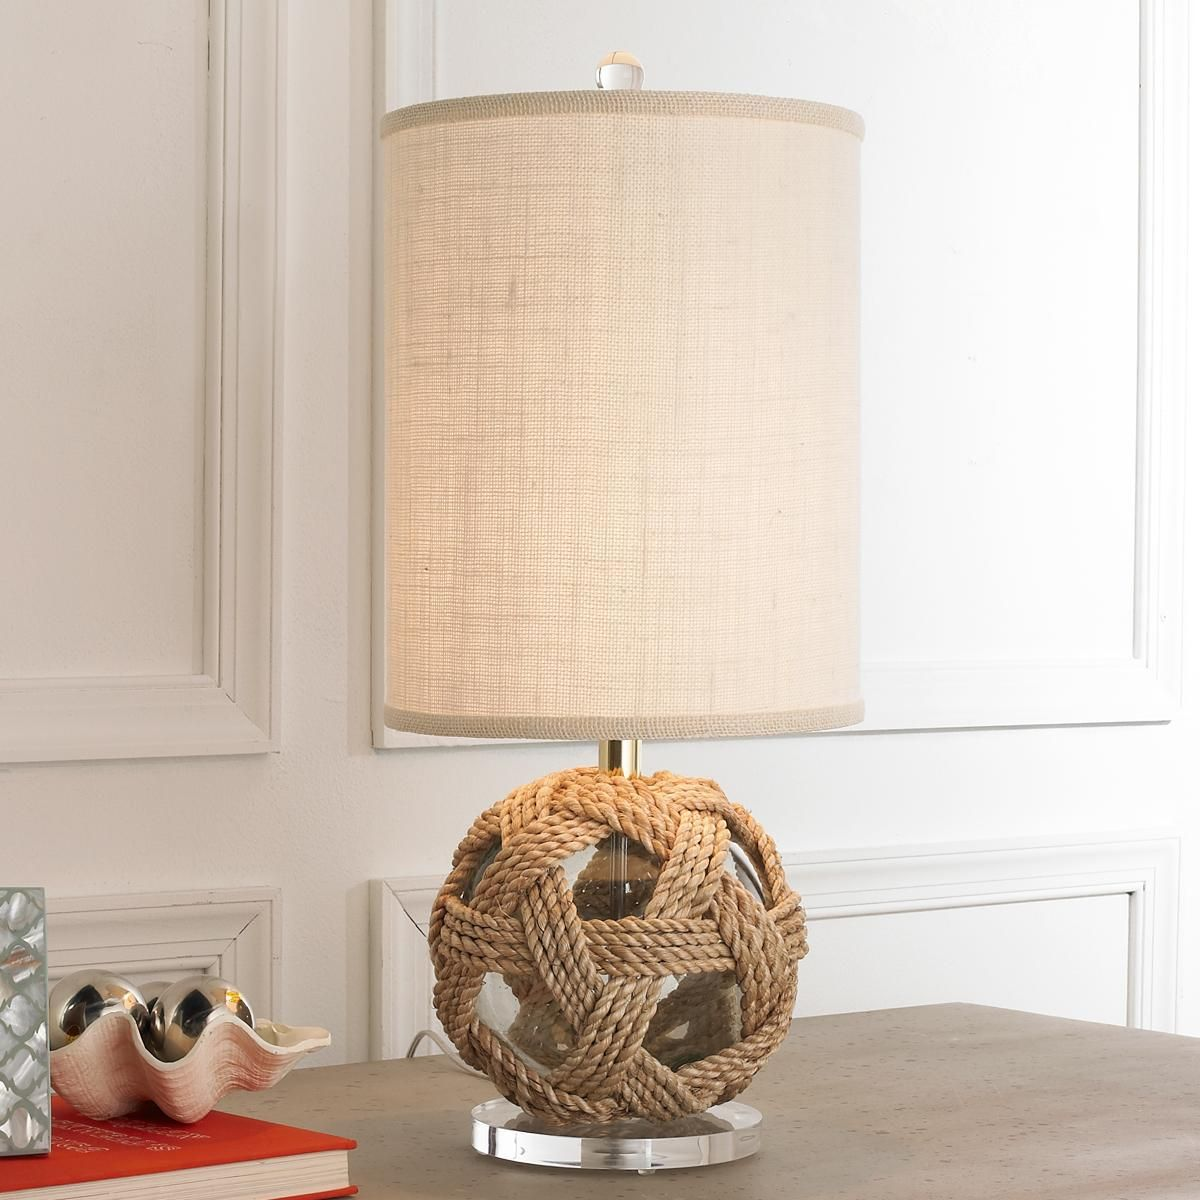 Jute Weave Glass Buoy Table Lamp A Modern Twist On A Jute Wrapped Glass Buoy  Explains